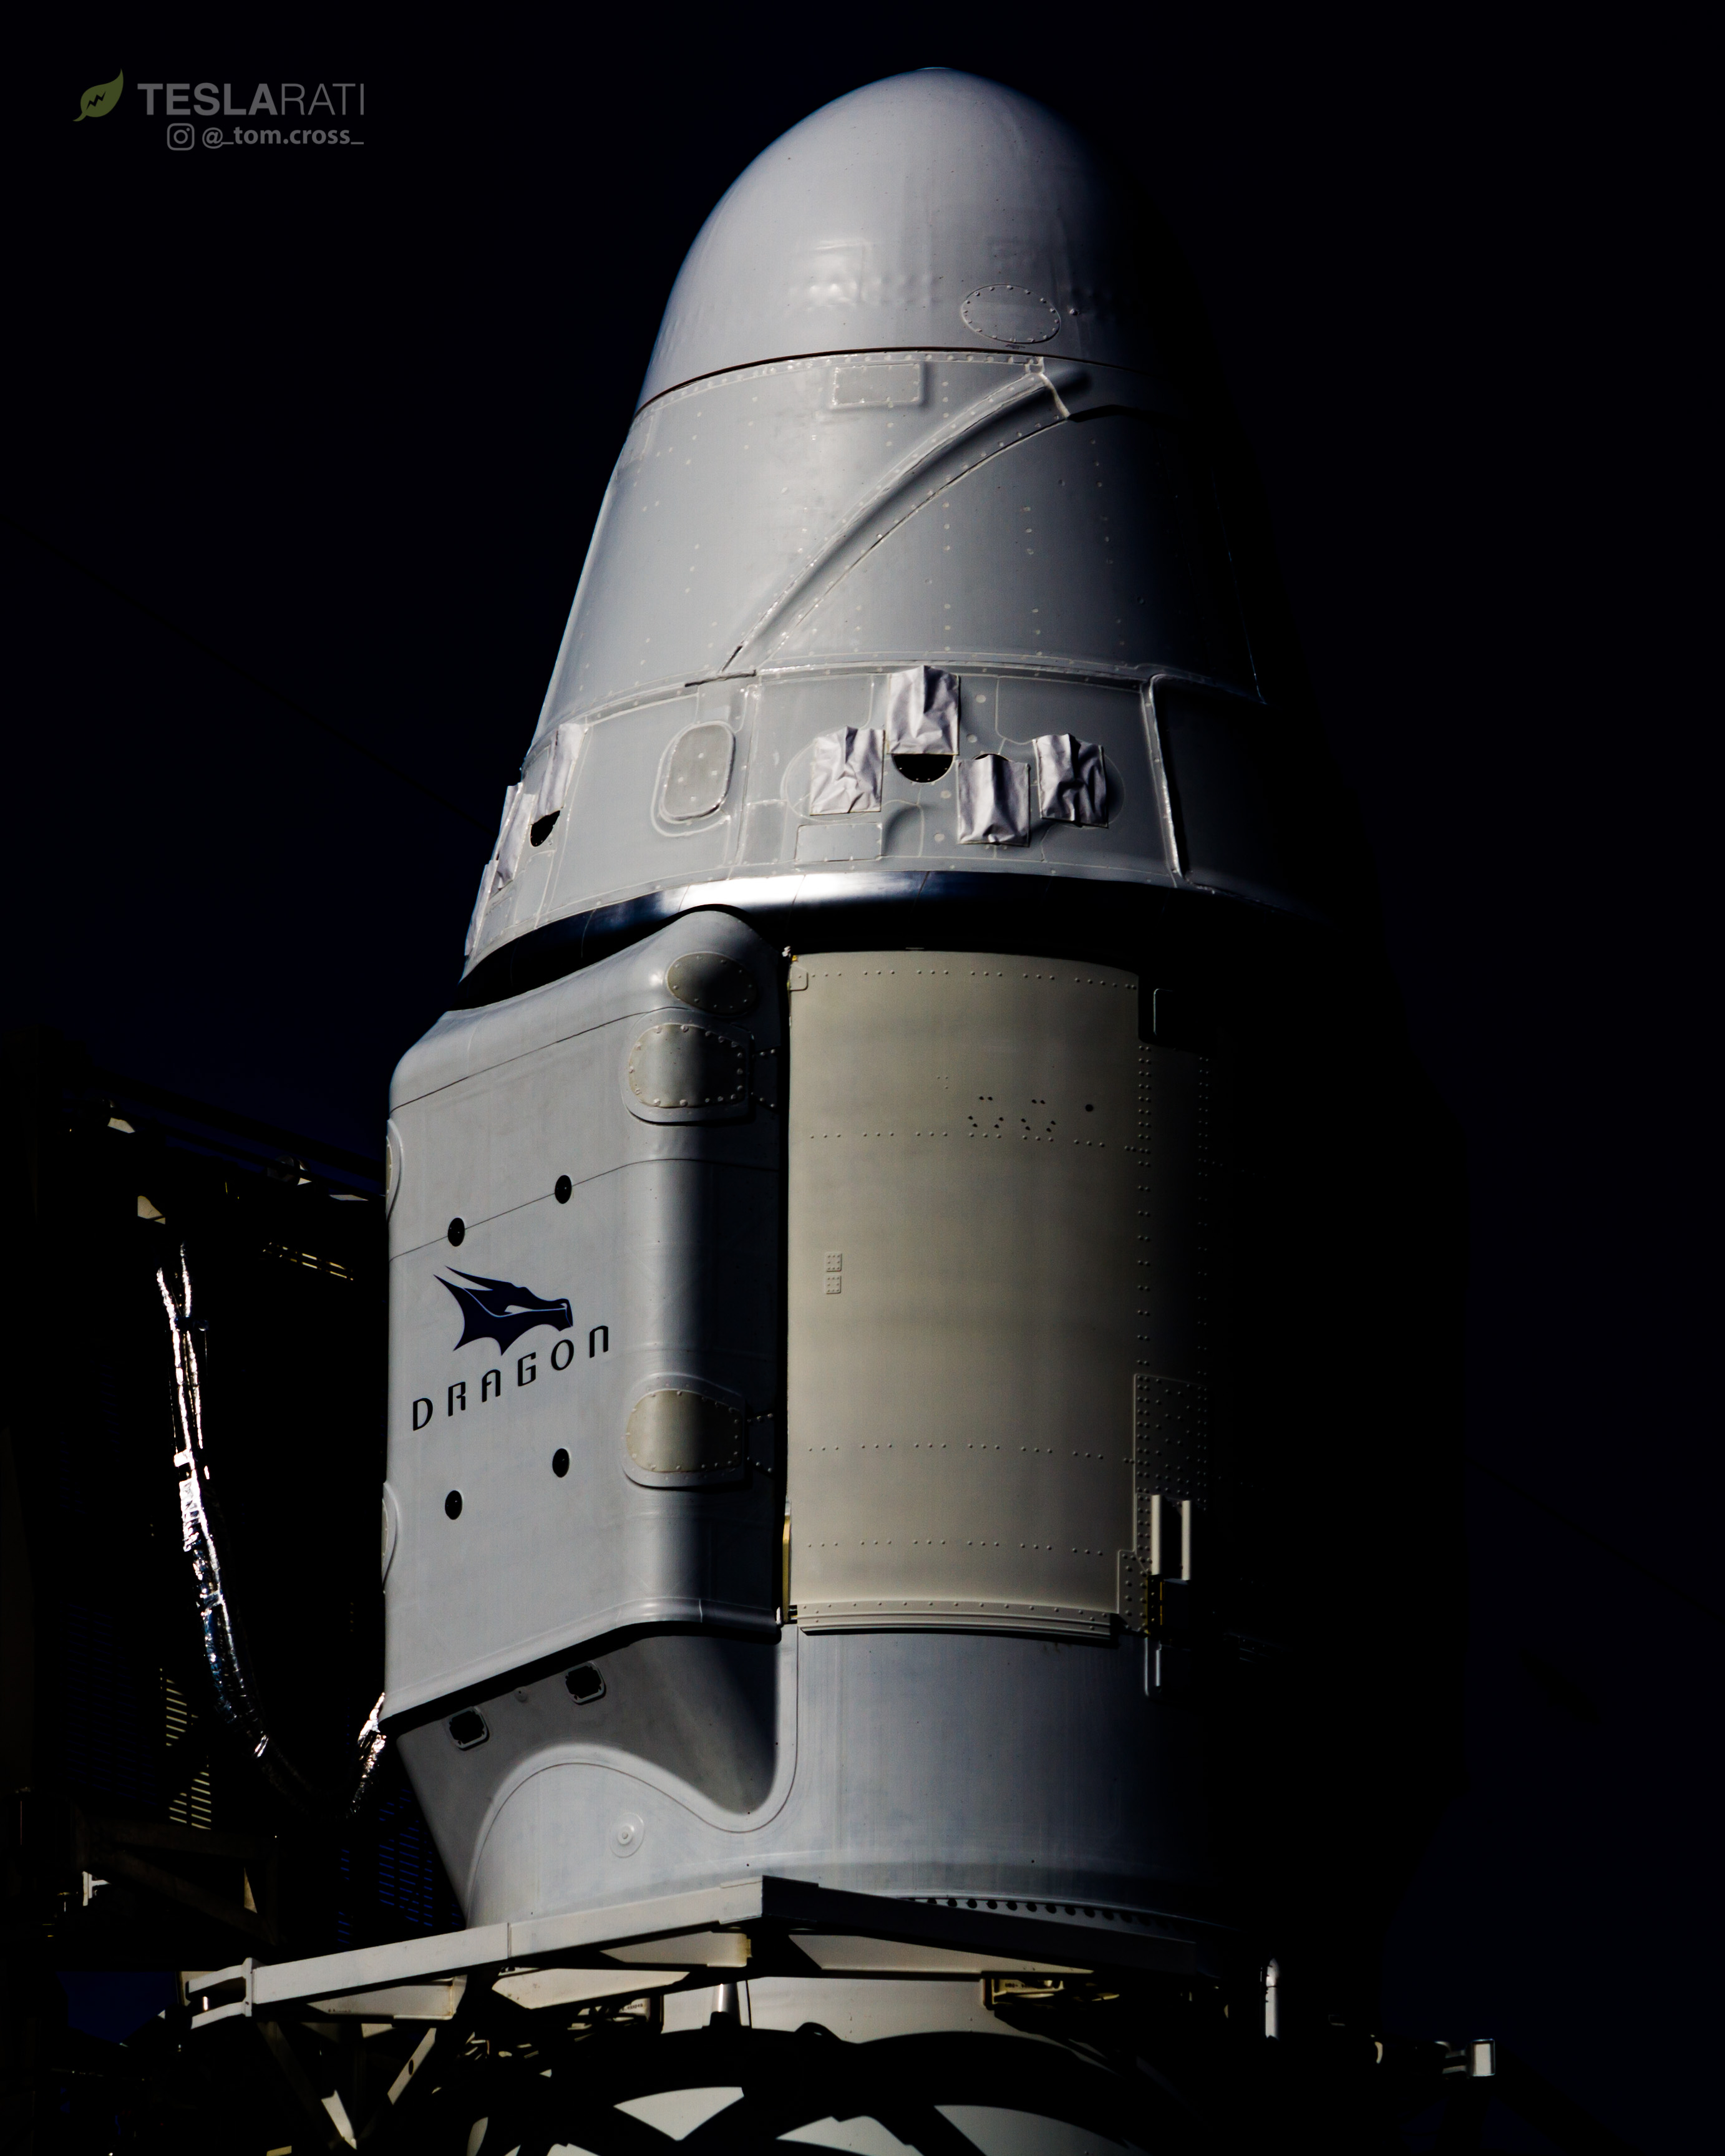 CRS-14 Dragon details 2 (Tom Cross)